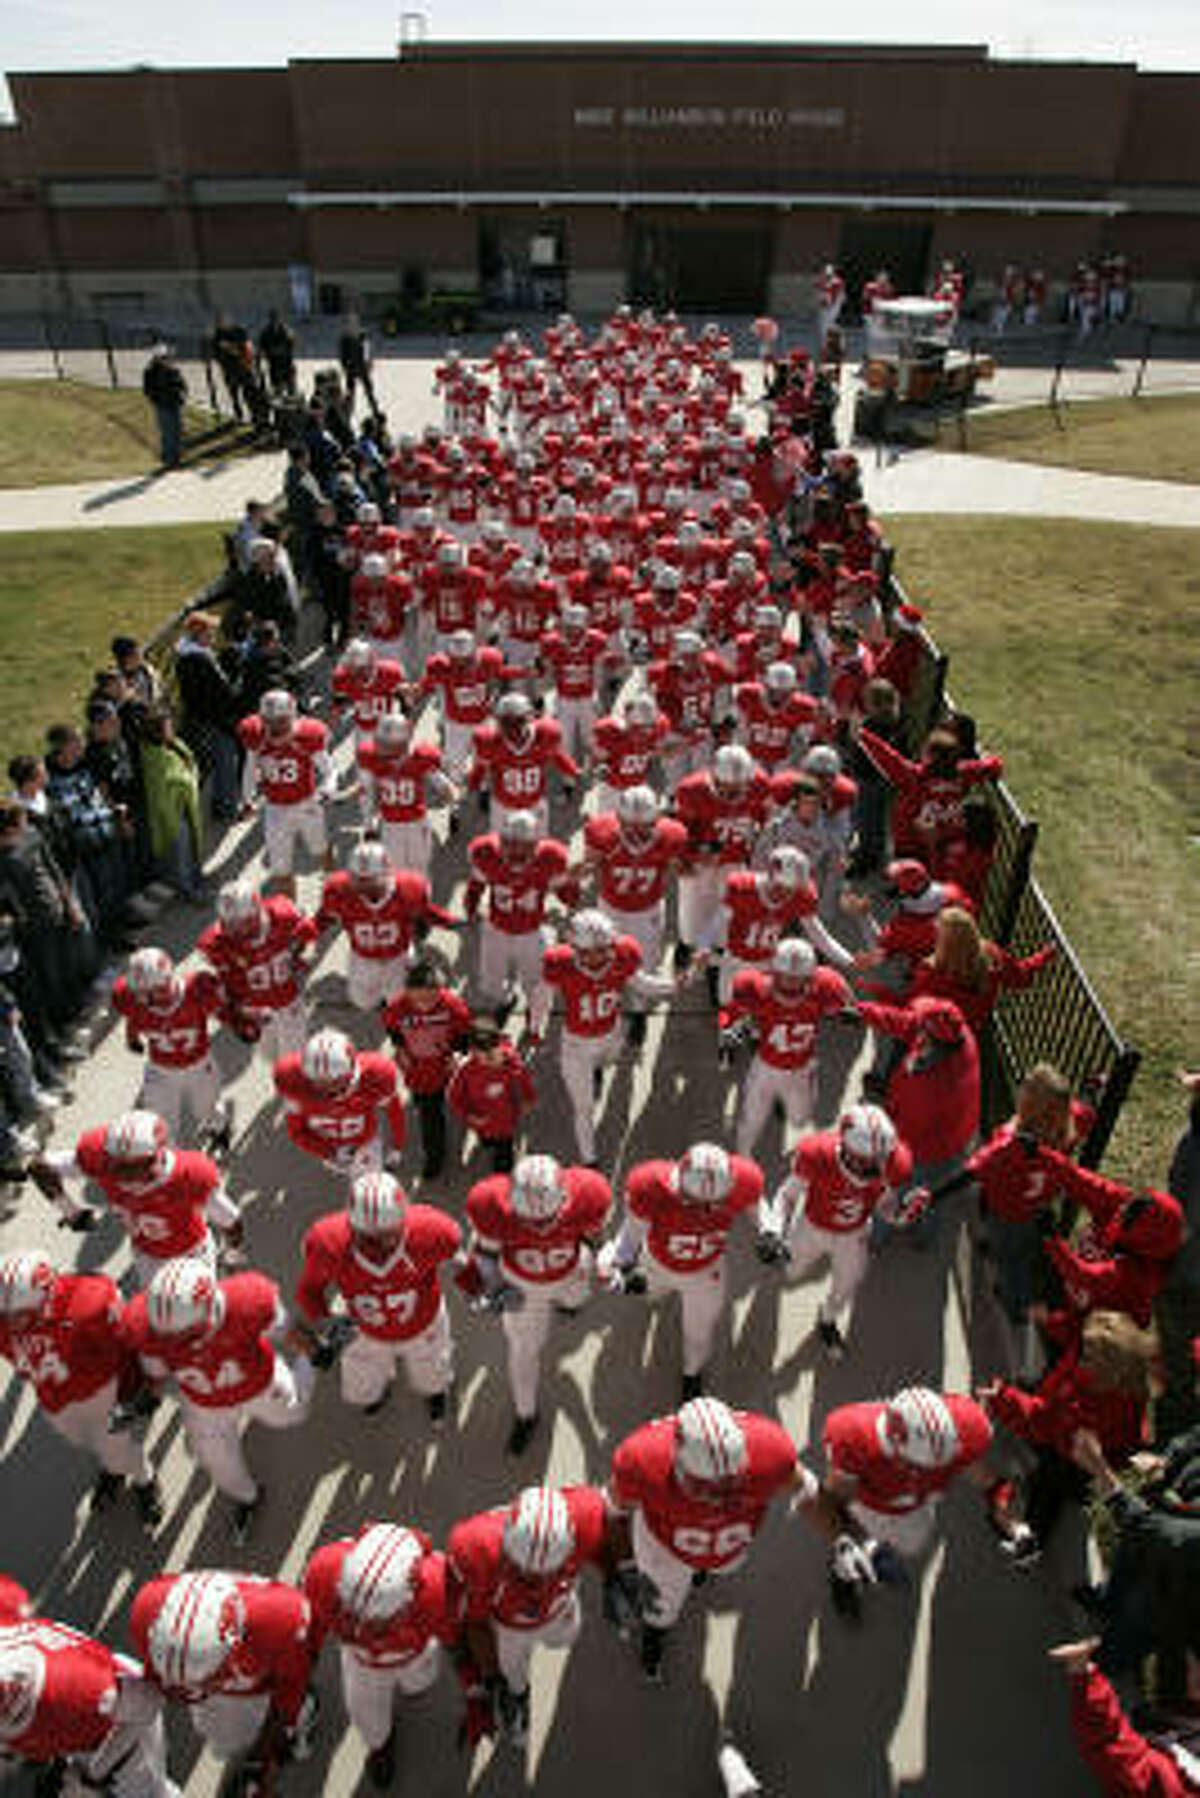 The Katy Tigers make their way onto the field to face the Clear Springs Chargers before the 5A Region III championship, Saturday at Tully Stadium.